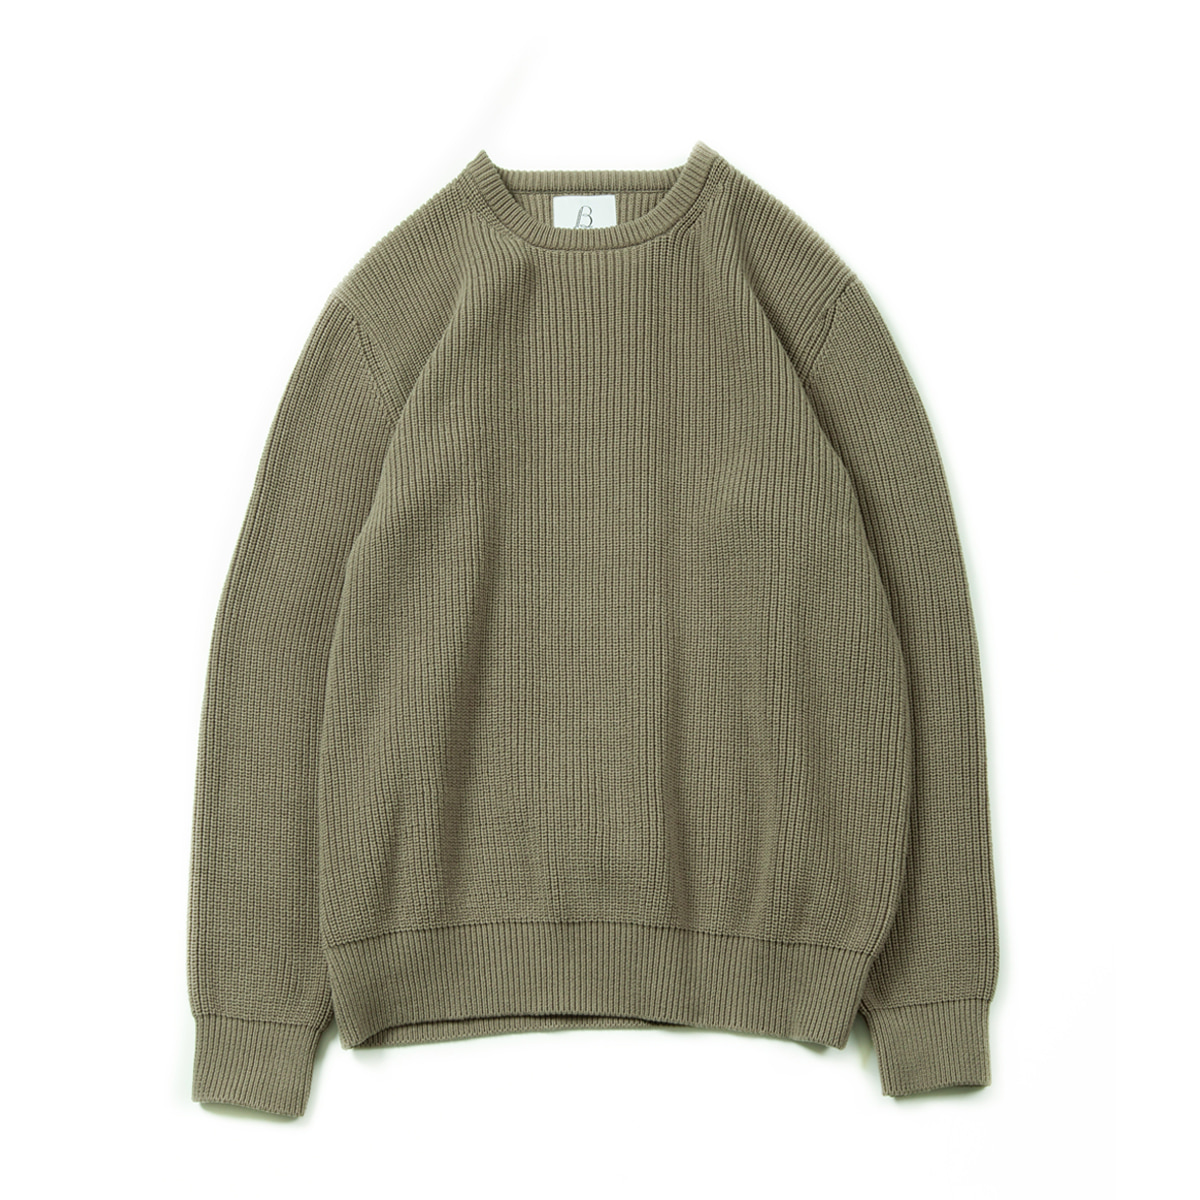 [BROWNYARD] FISHERMAN SWEATER 'OLIVE'